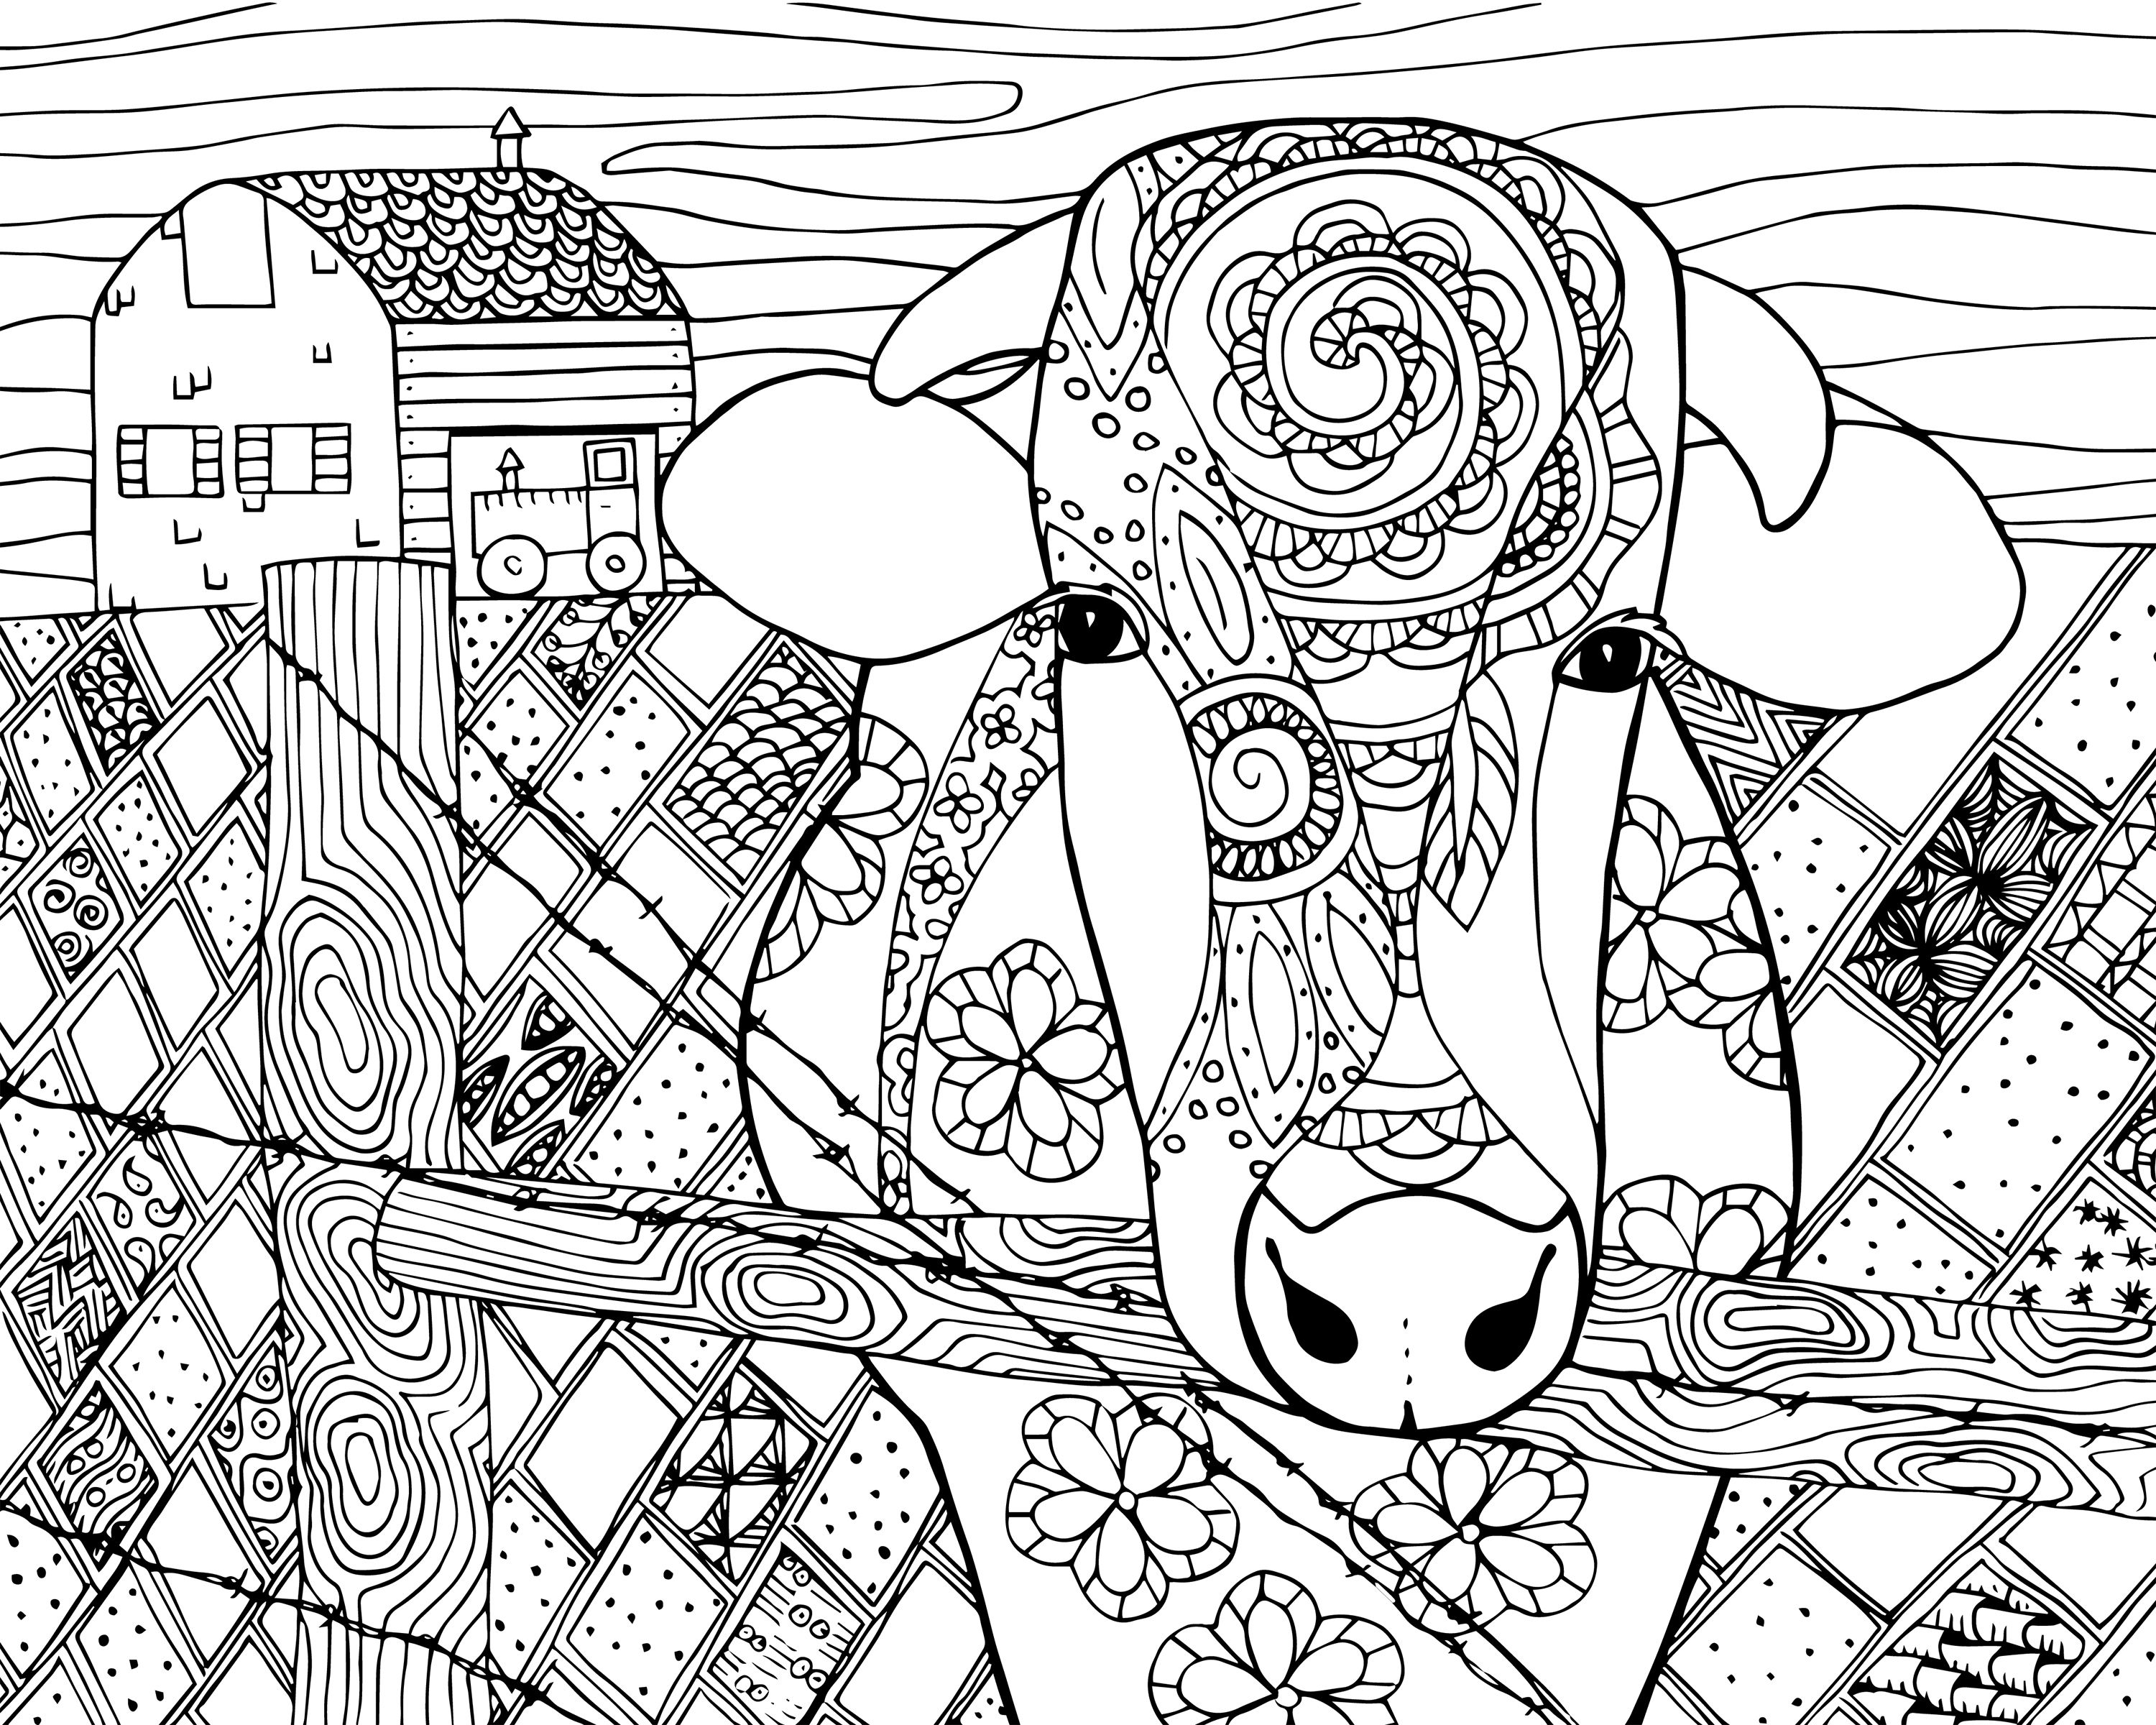 3000x2400 Free Coloring Pages Adults Art And Abstract Category Image